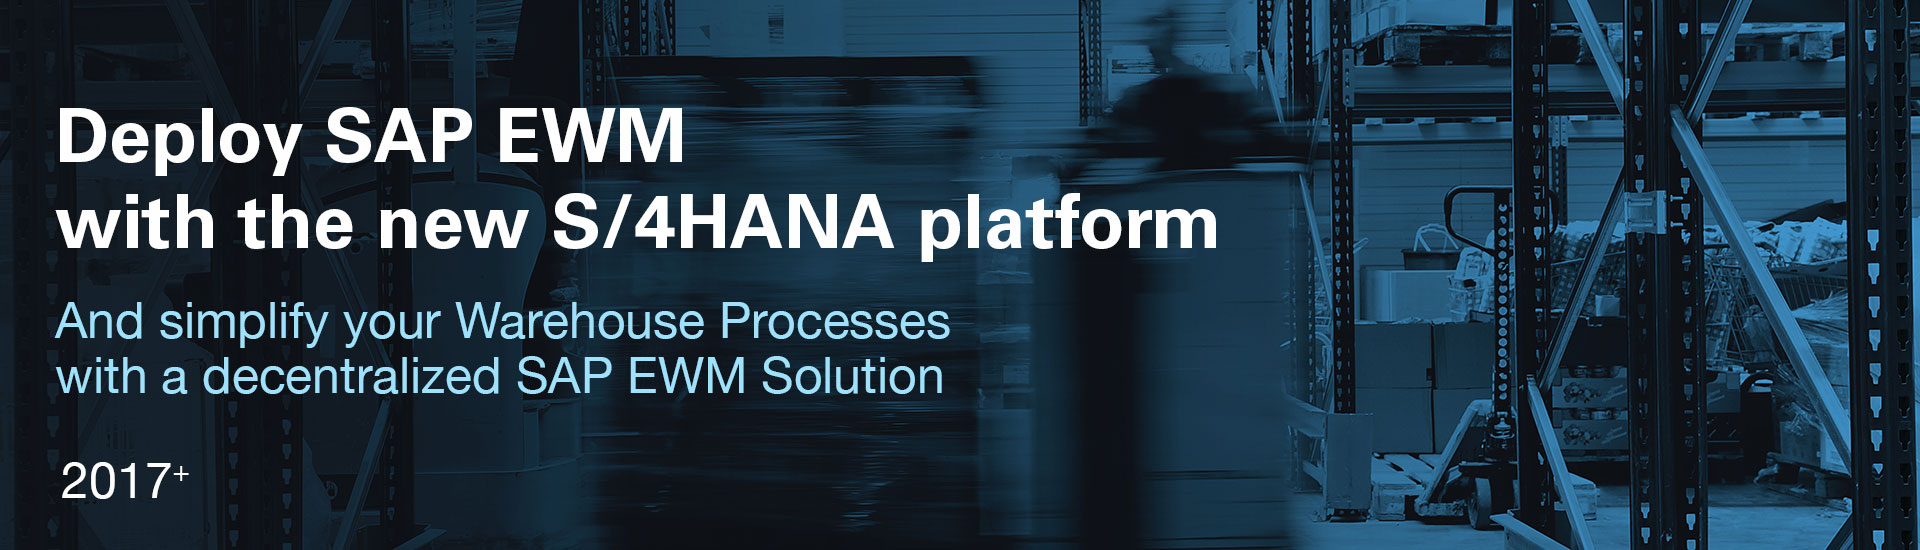 Deploy SAP EWM with the new S/4HANA platform at Click'n Go